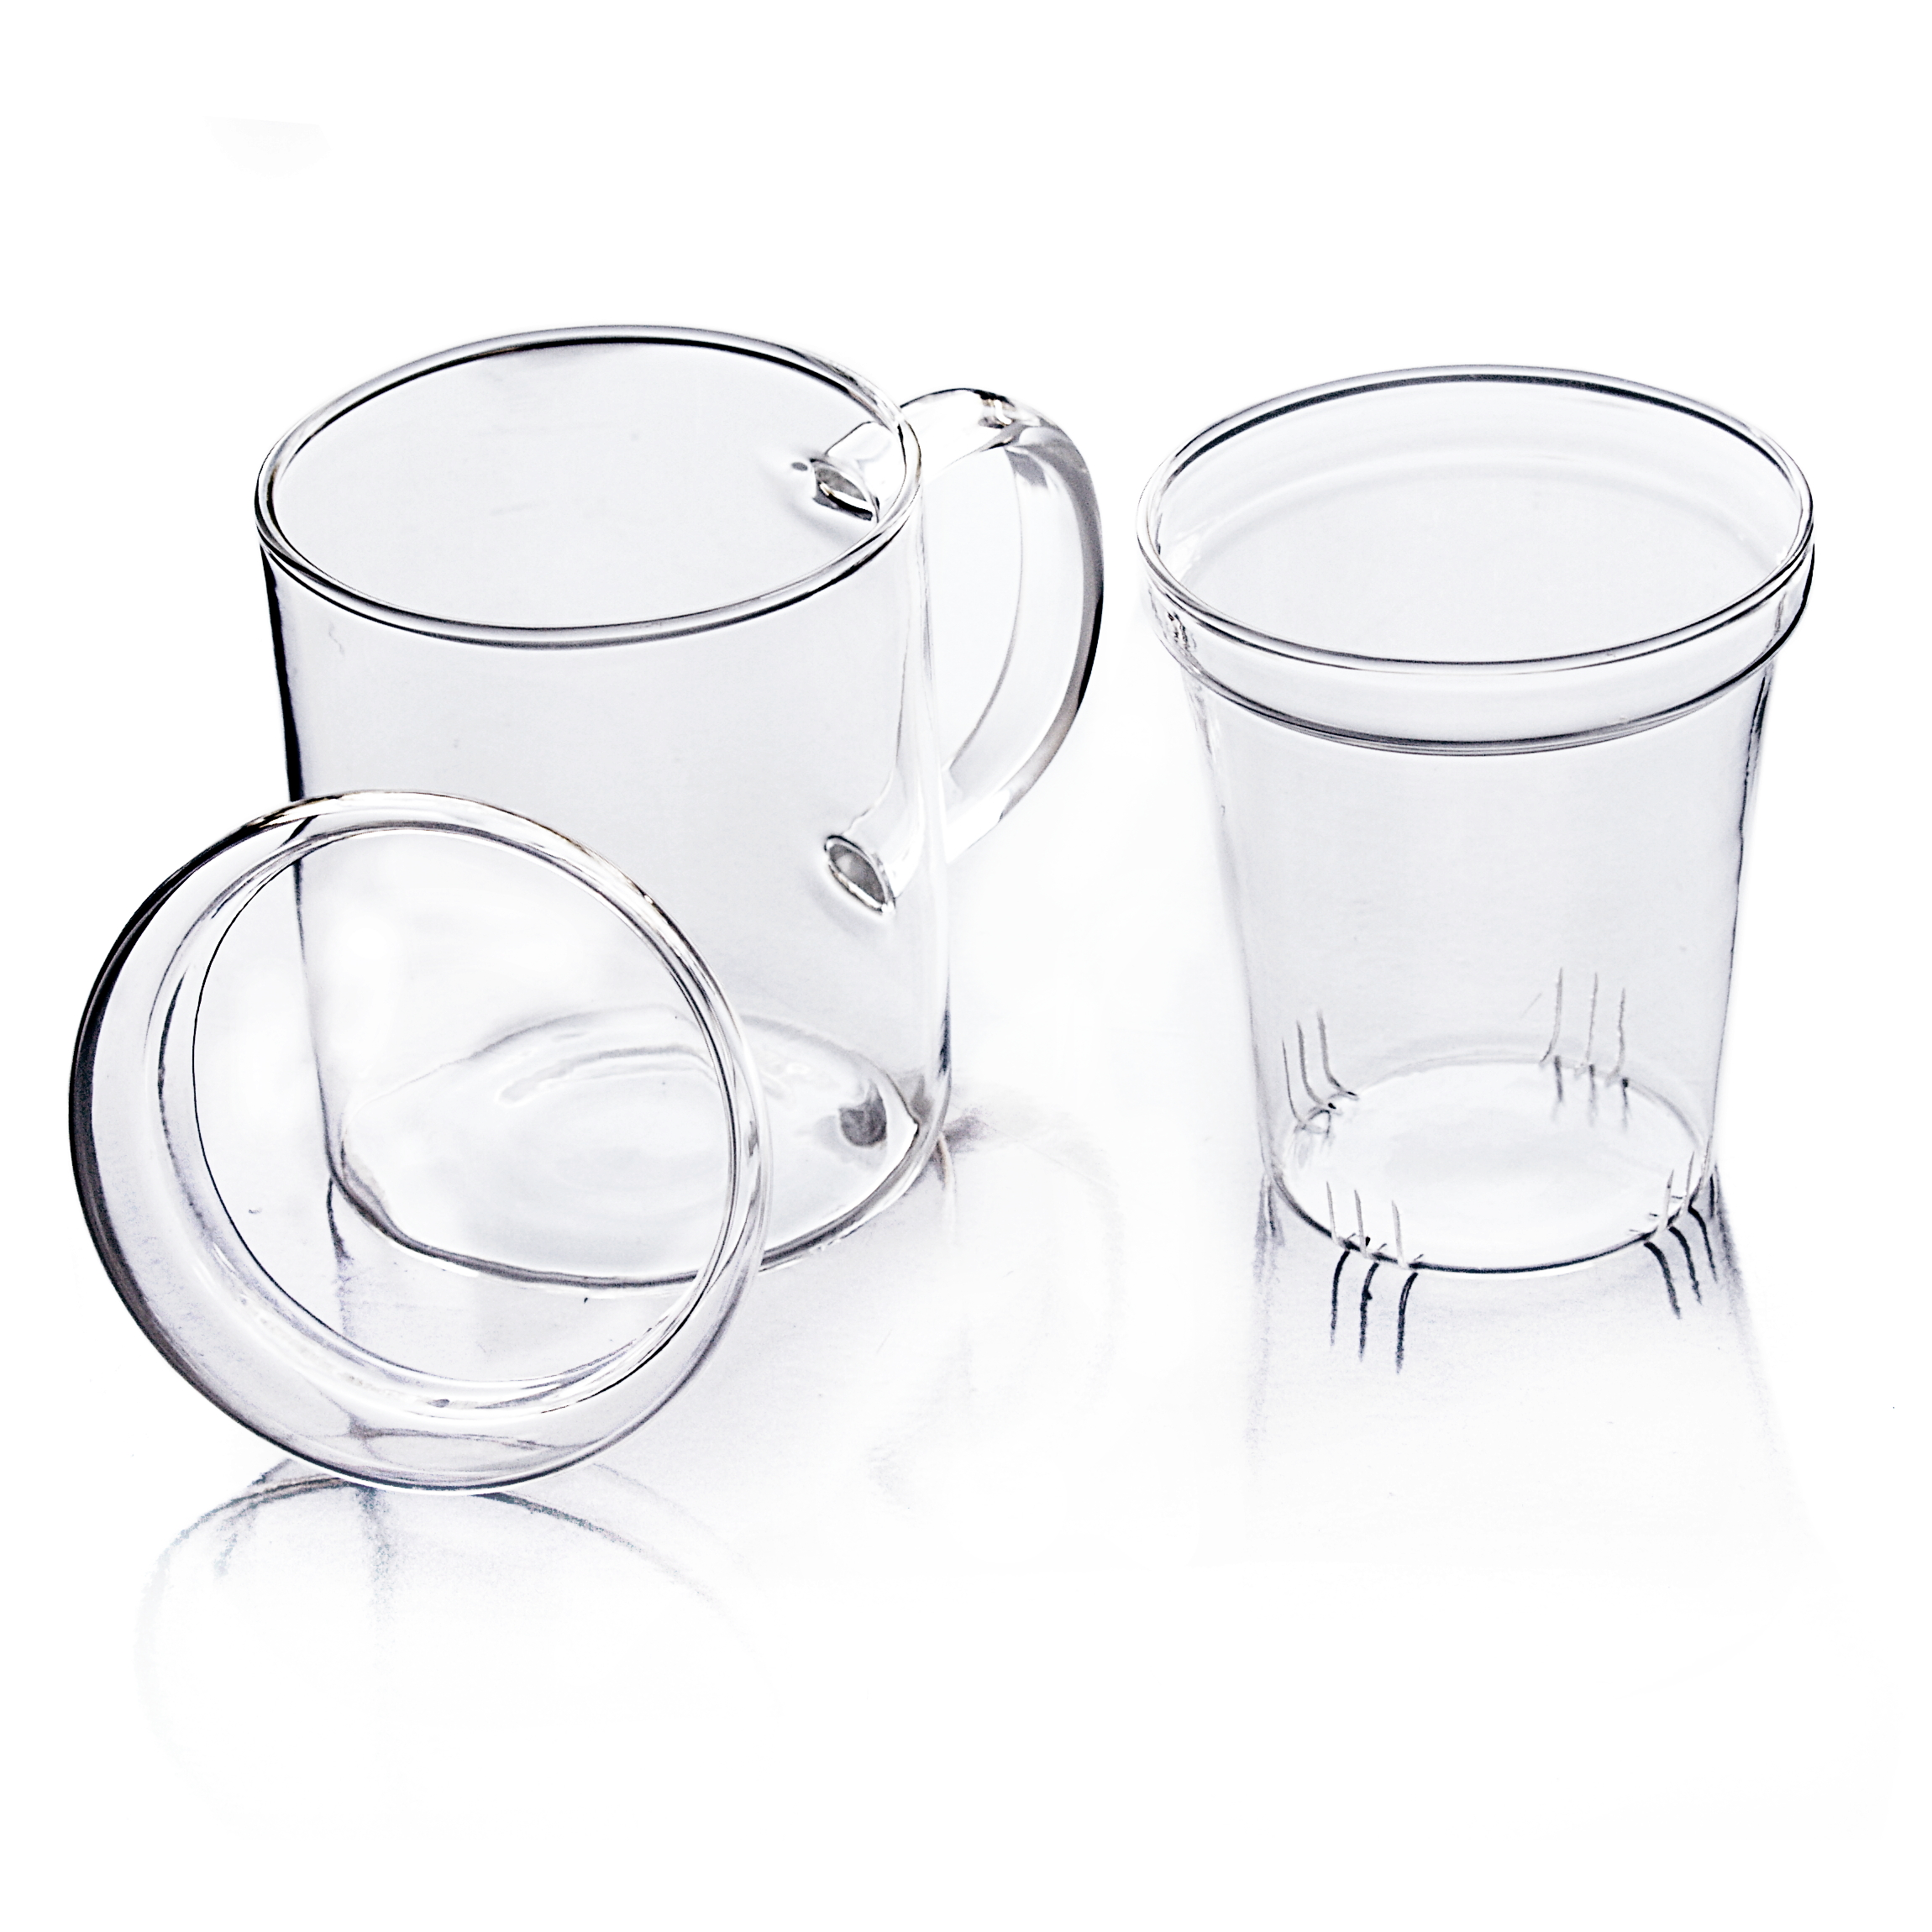 Heat Resistant 10 Ounce Glass Teacup with Infuser